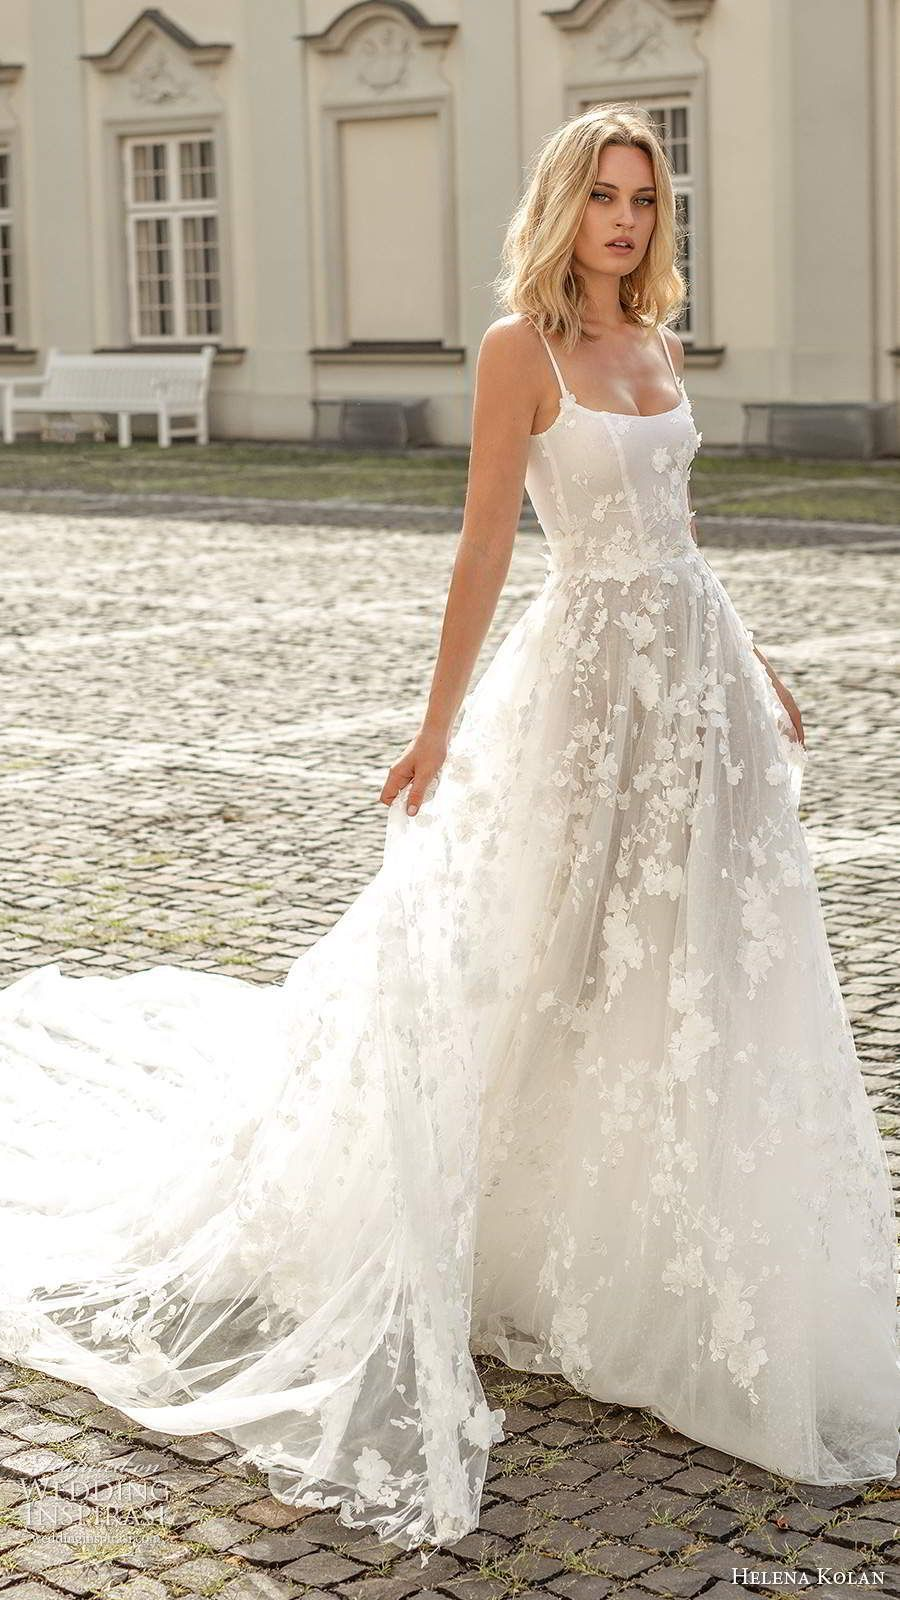 helena kolan 2020 bridal sleeveless thin straps scoop neckline fully embellished a line ball gown wedding dress scoop back cathedral train (1) mv -- Helena Kolan 2020 Wedding Dresses | Wedding Inspirasi #wedding #weddings #bridal #weddingdress #weddingdresses #bride #fashion ~